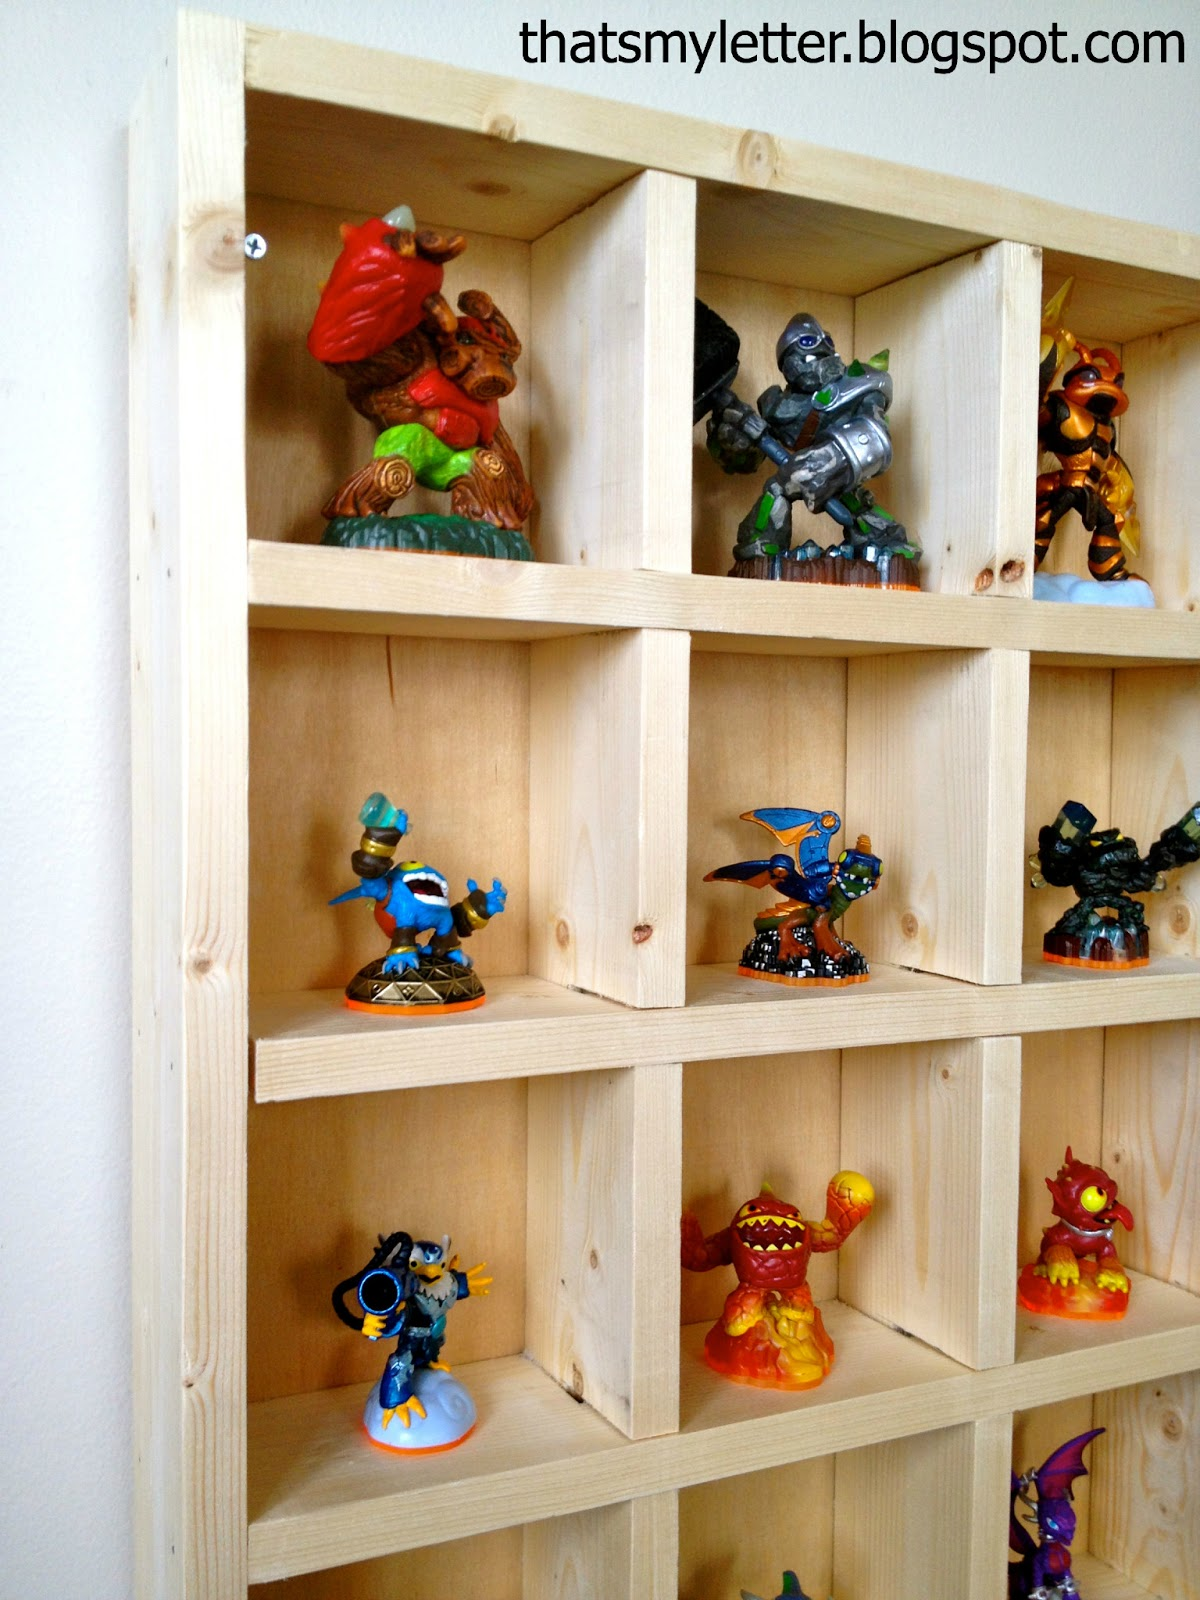 Each Skylander Has Itsu0027 Own Cubby Slot, The Giants Just Fit Into The 5u2033 X  5u2033 Space And Thereu0027s Even Enough Room To Double Up Once The Collection  Grows.